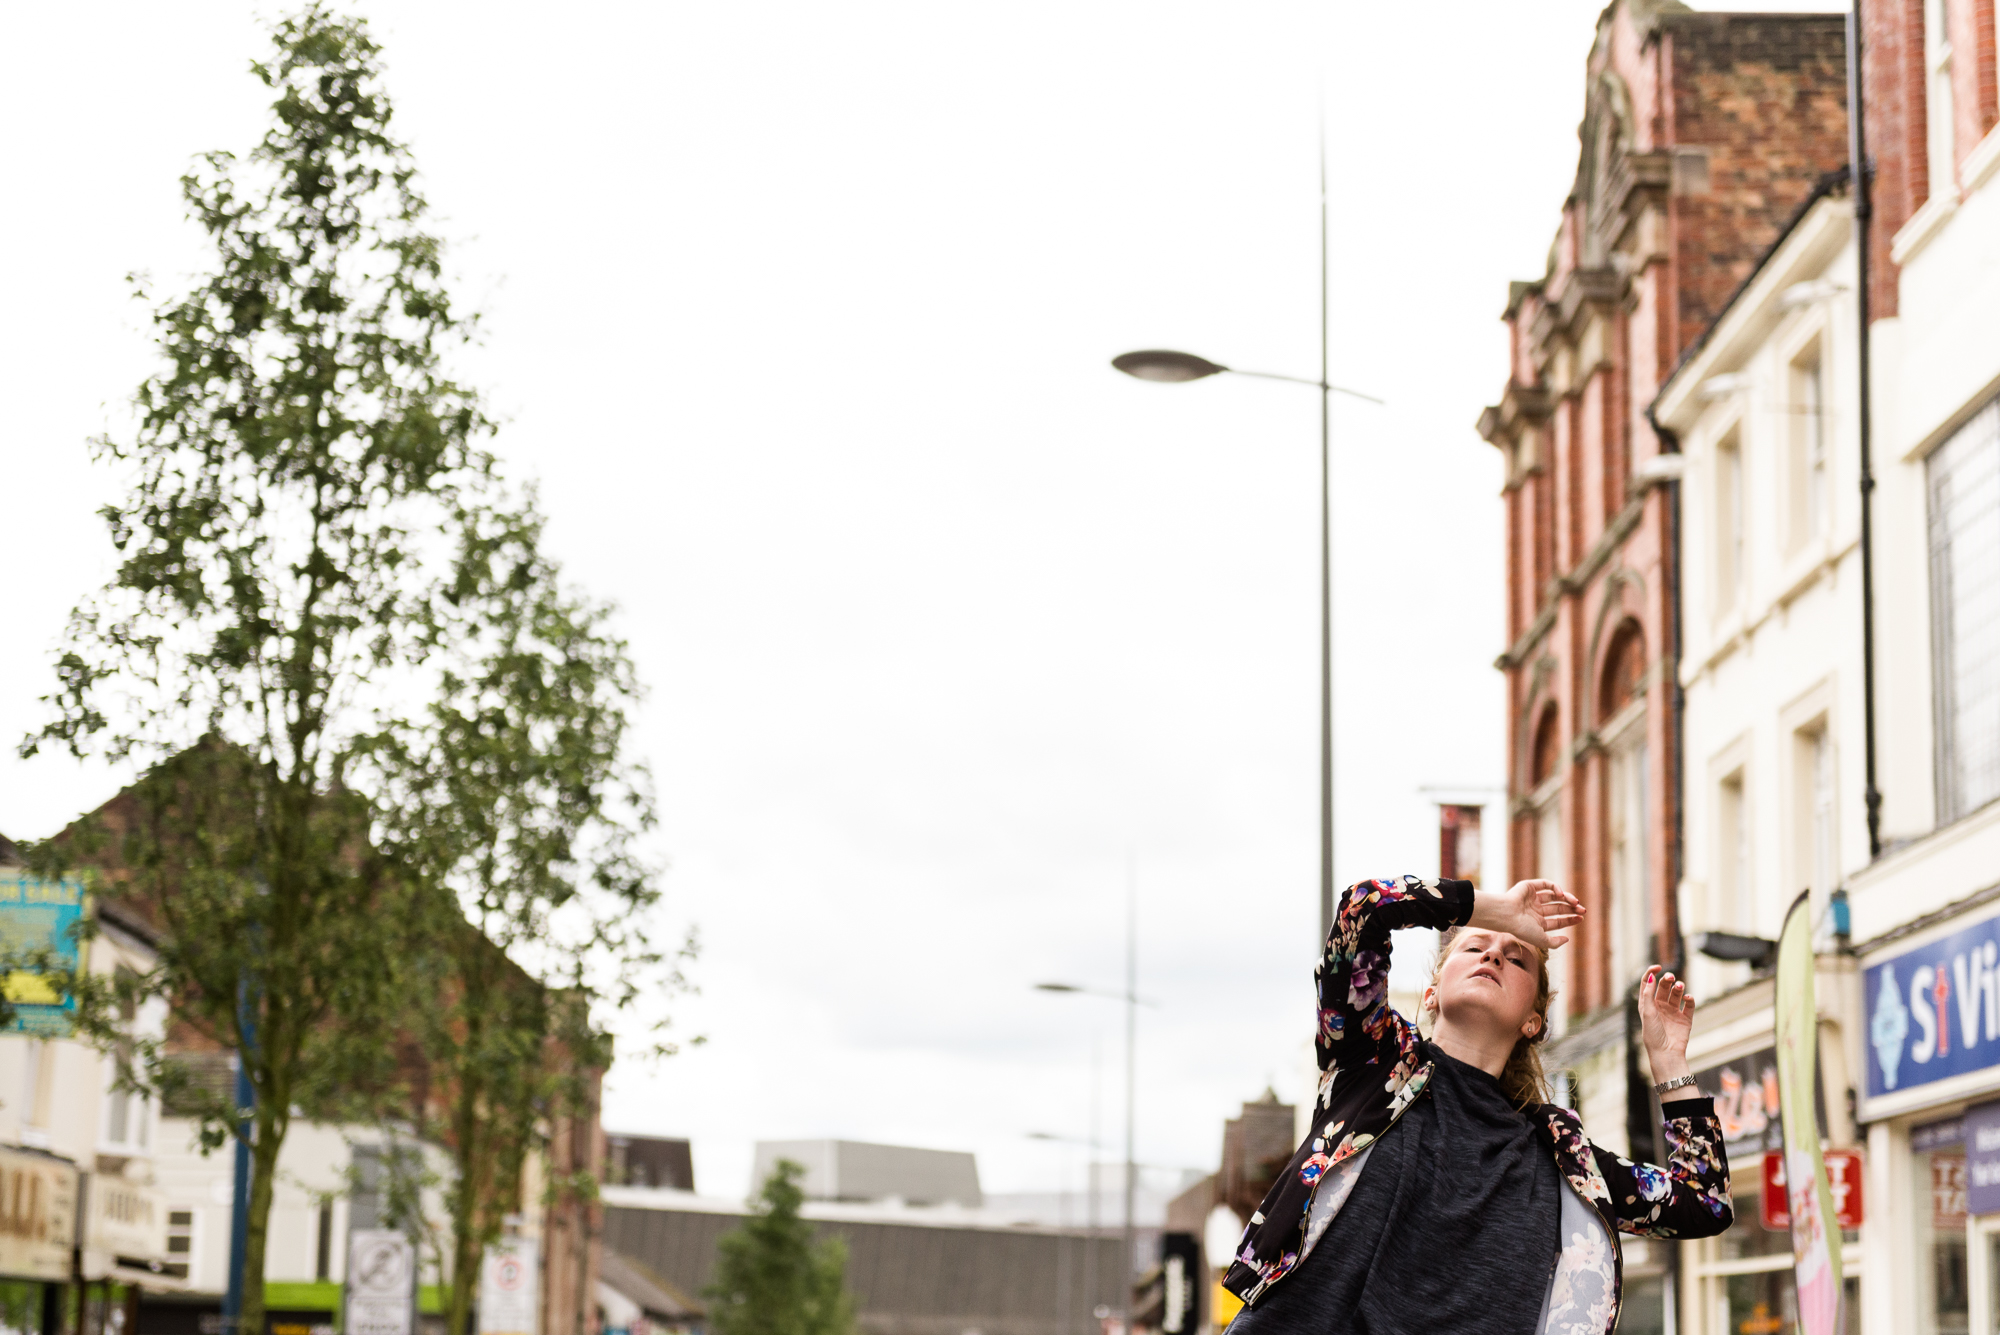 Restoke - Big Dance Rehearsal - Dance Fridays - Dancing in the Street - The Regent Theatre,  Picadilly, Hanley - Documentary Photography by Jenny Harper-10.jpg